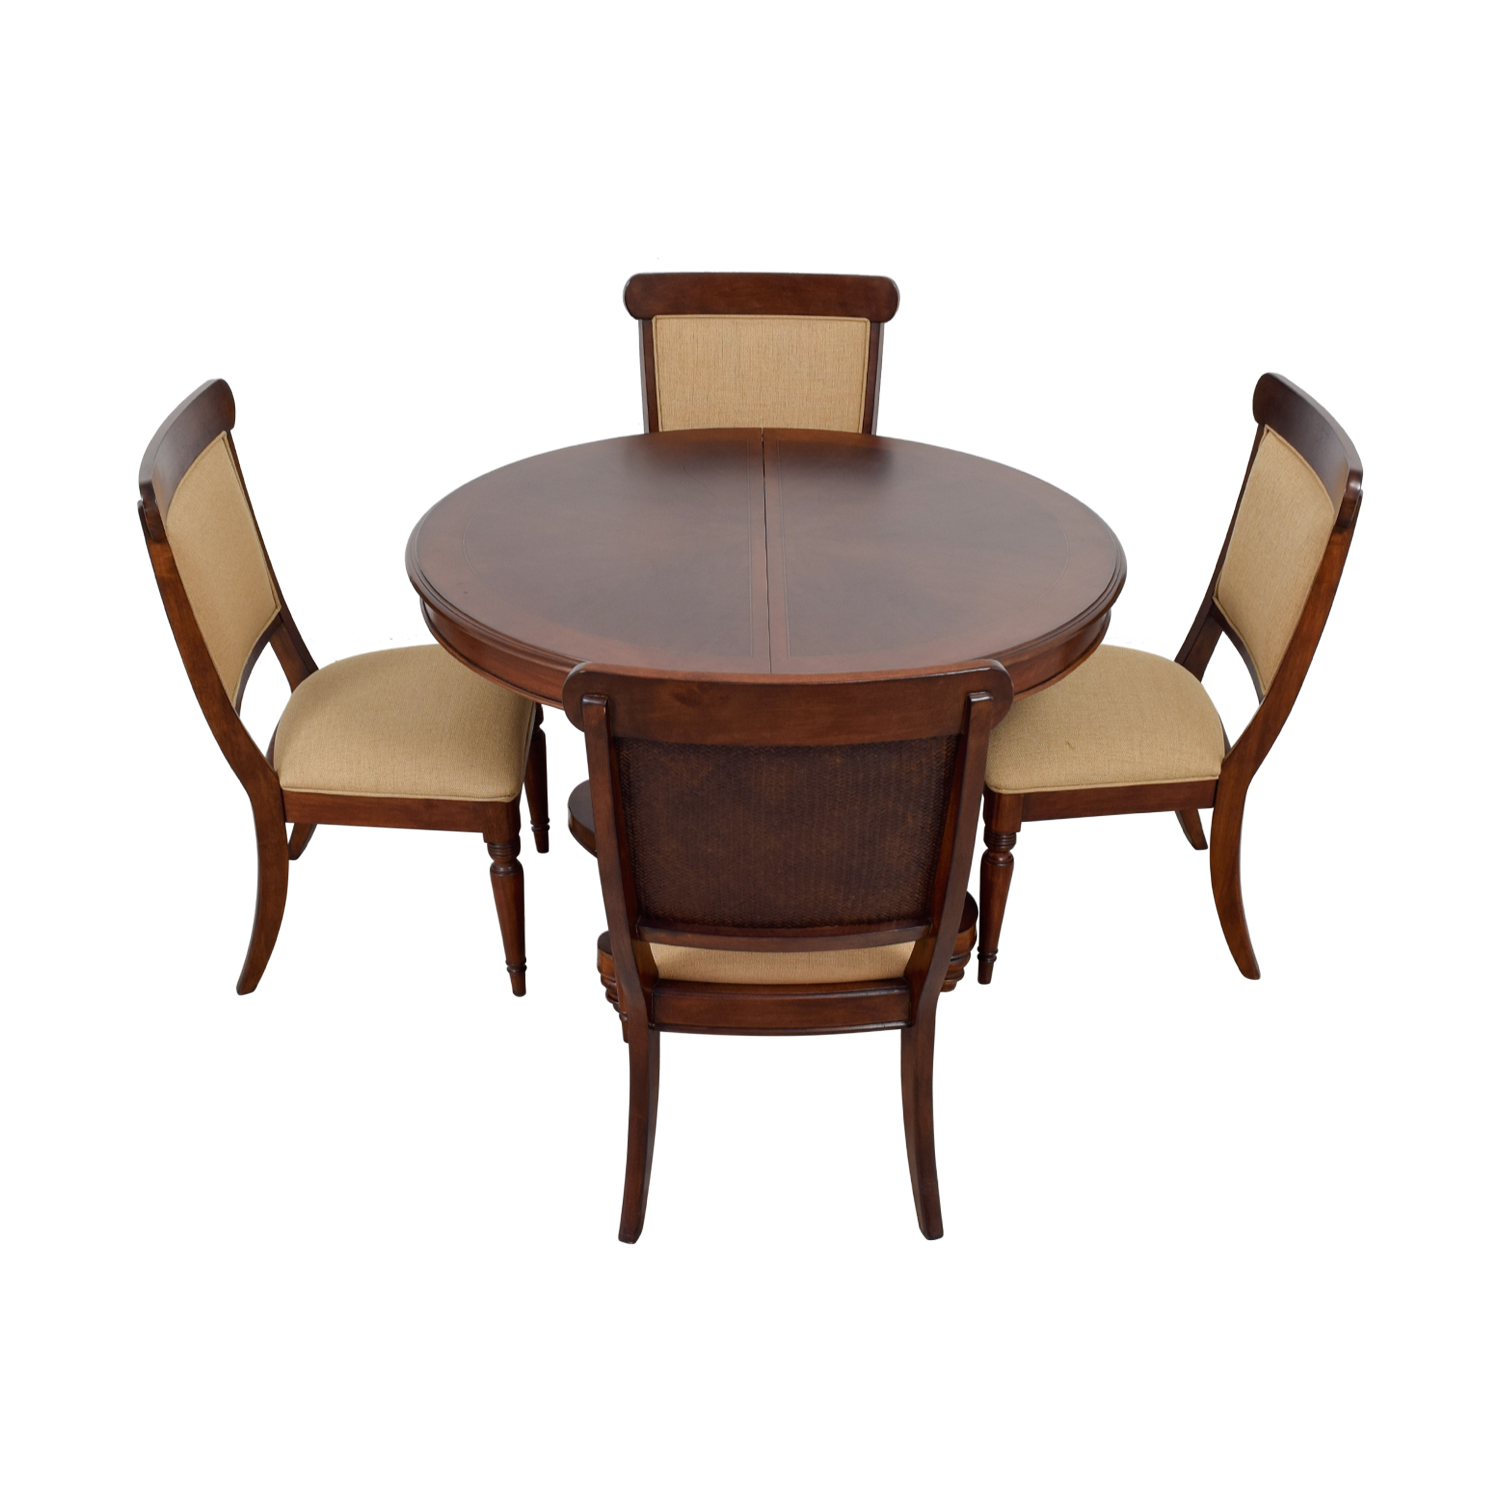 buy Macy's Wood Extendable Dining Set with Upholstered Chairs Macy's Sofas